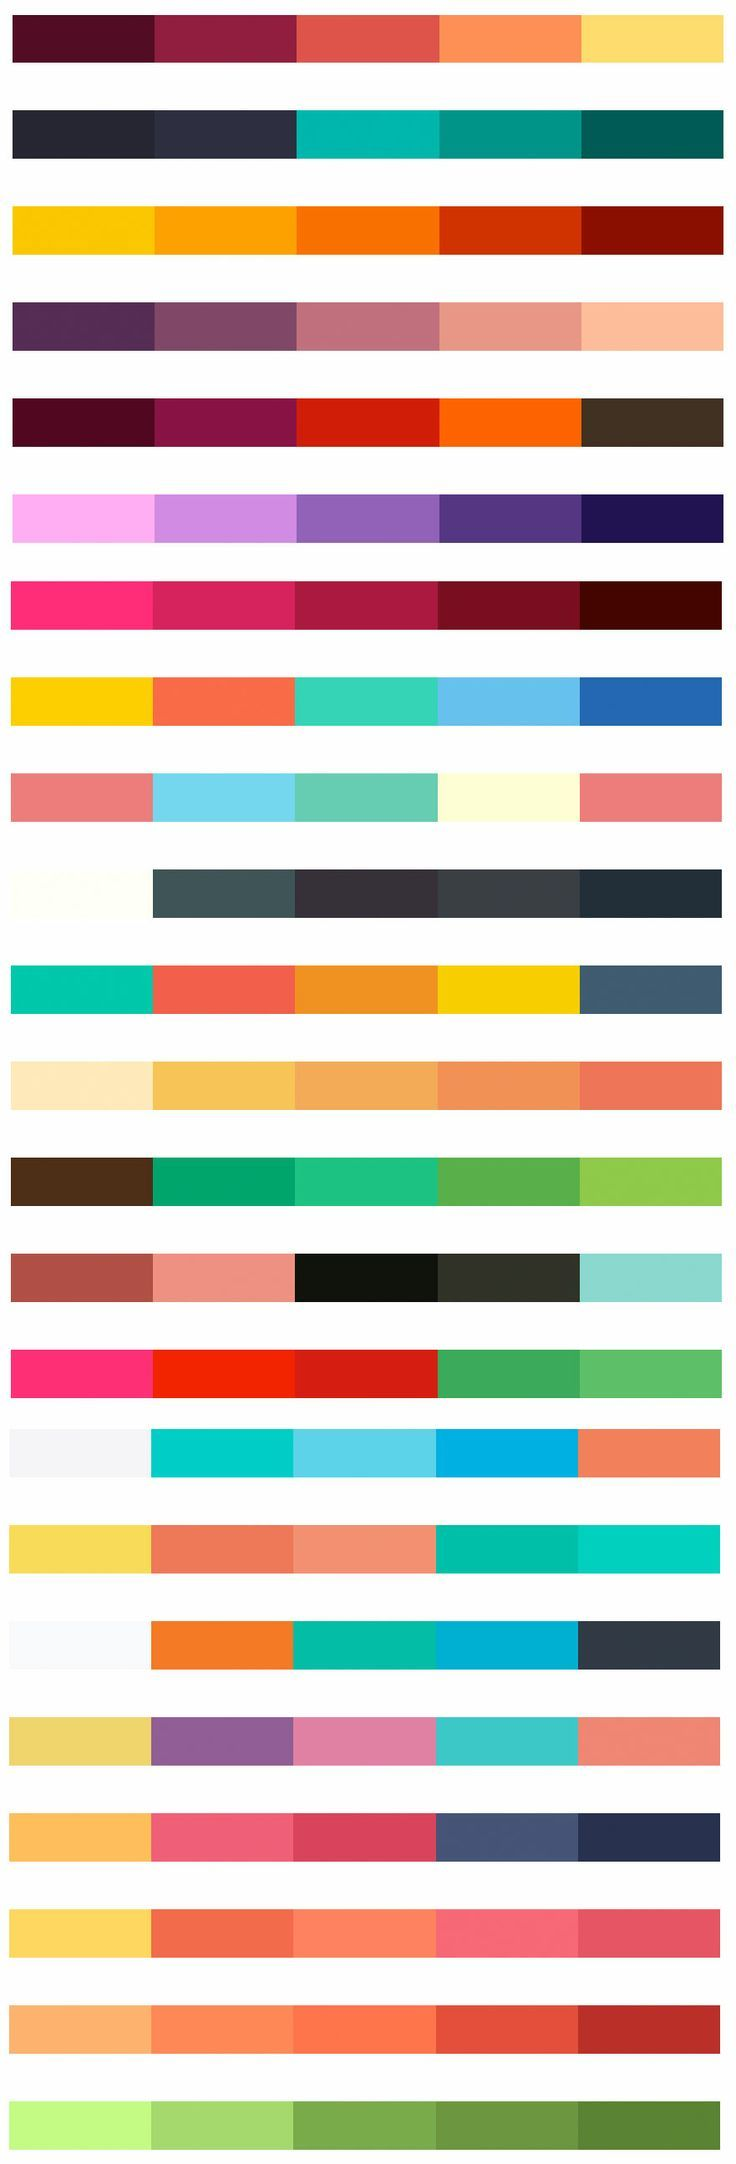 Flat-UI Colors | Autumn Edition Lovely combinations for nail polish!